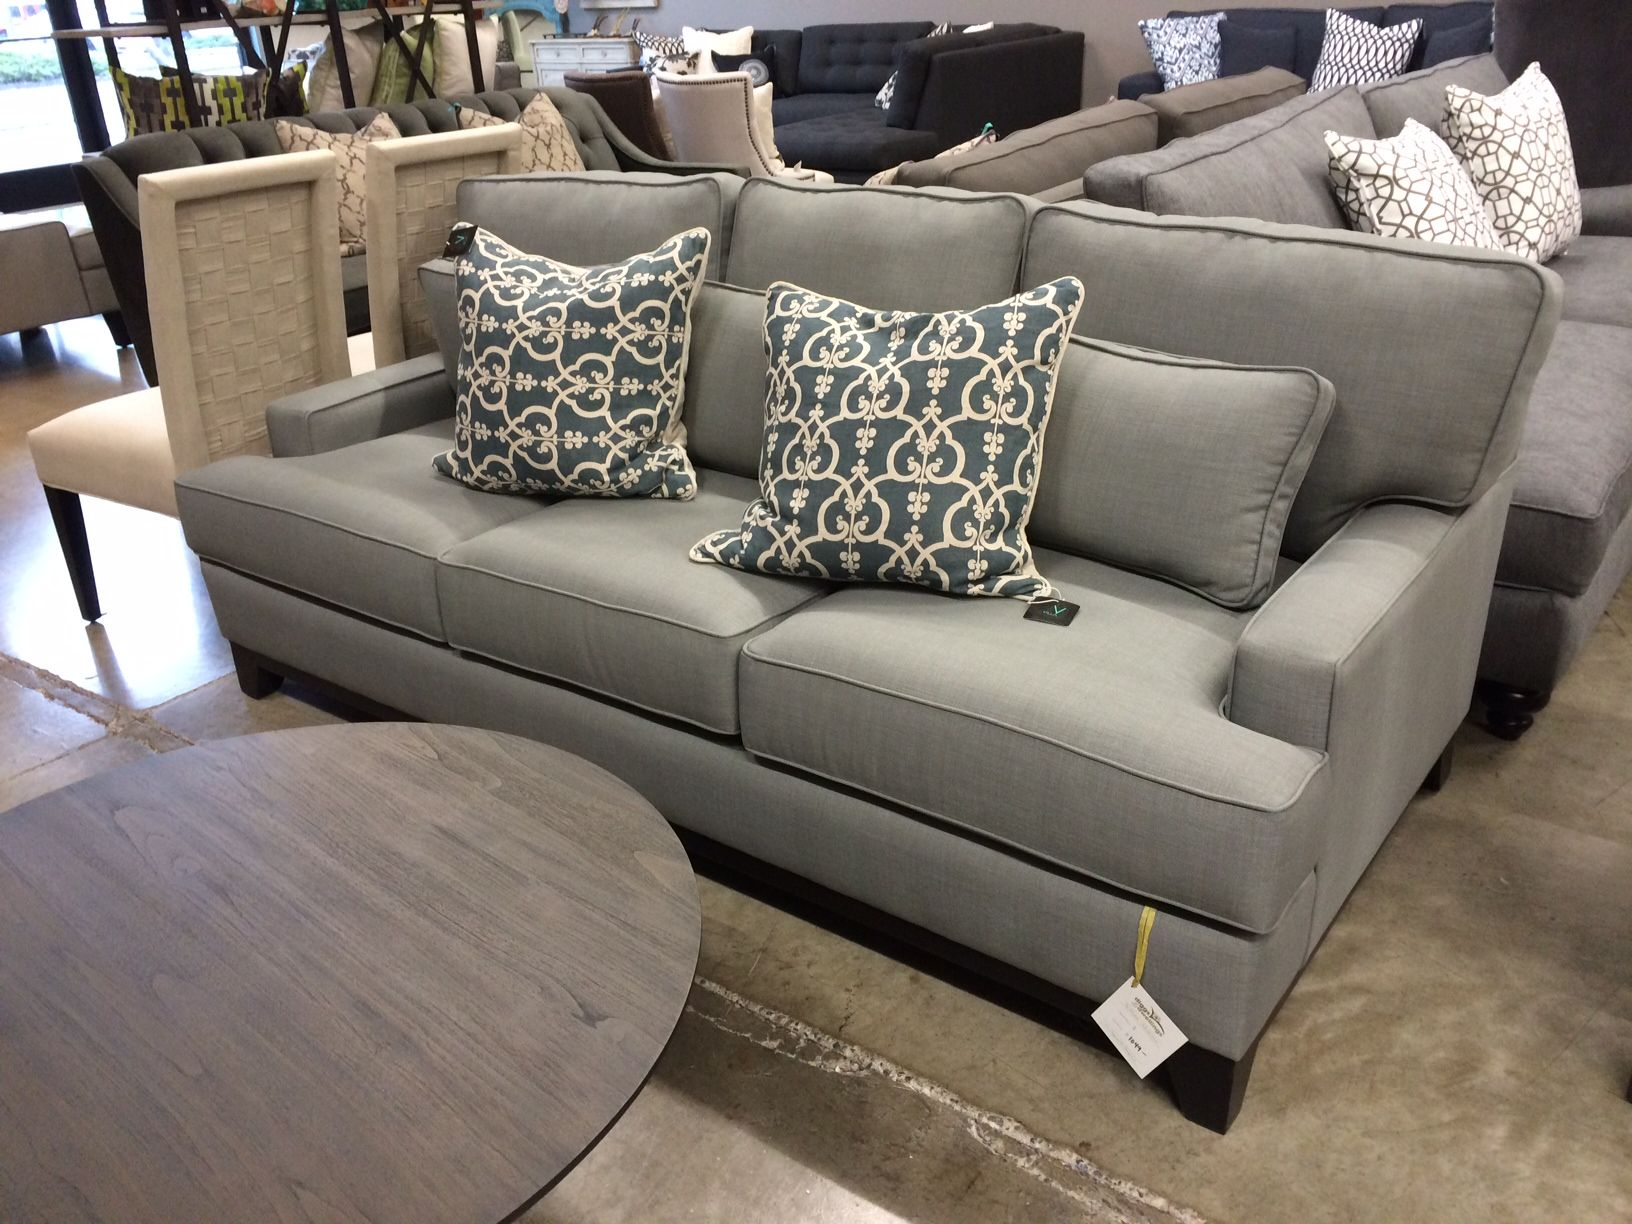 Houston Sofa With Images Hip Furniture Furniture Home Decor